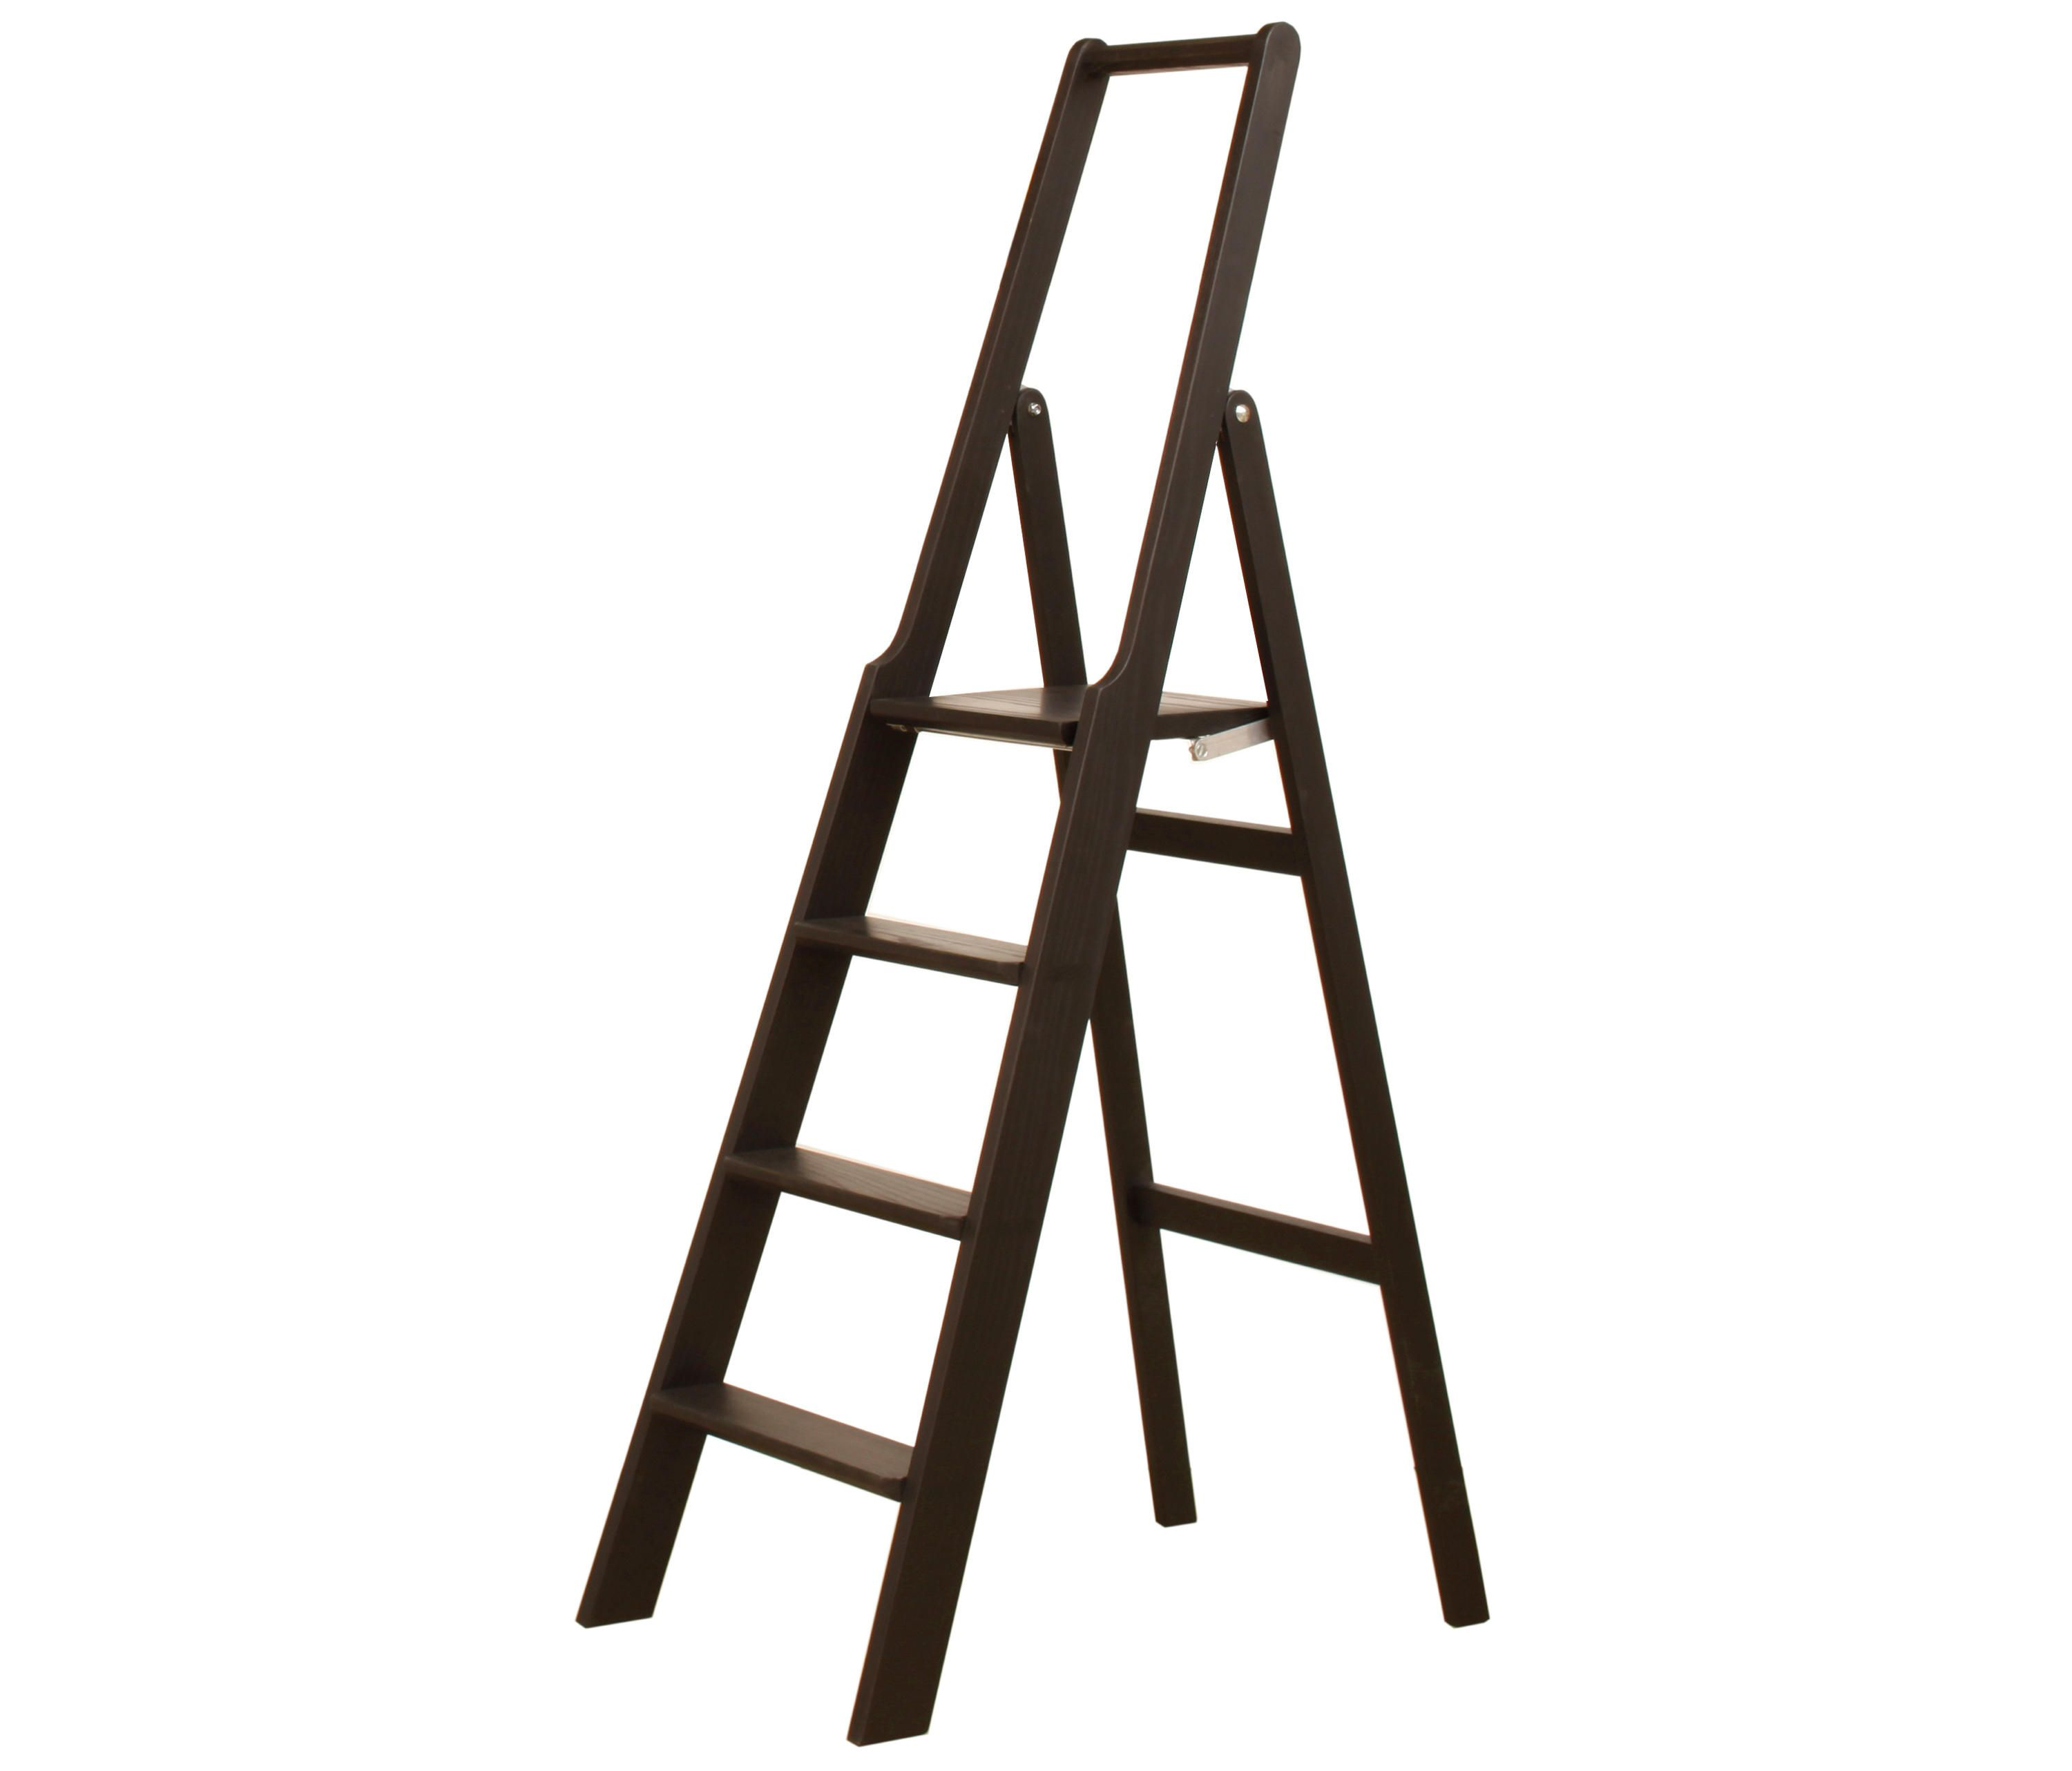 Step Up Step Ladder Library Ladders From Olby Design Architonic Step Ladders Ladder Library Ladder